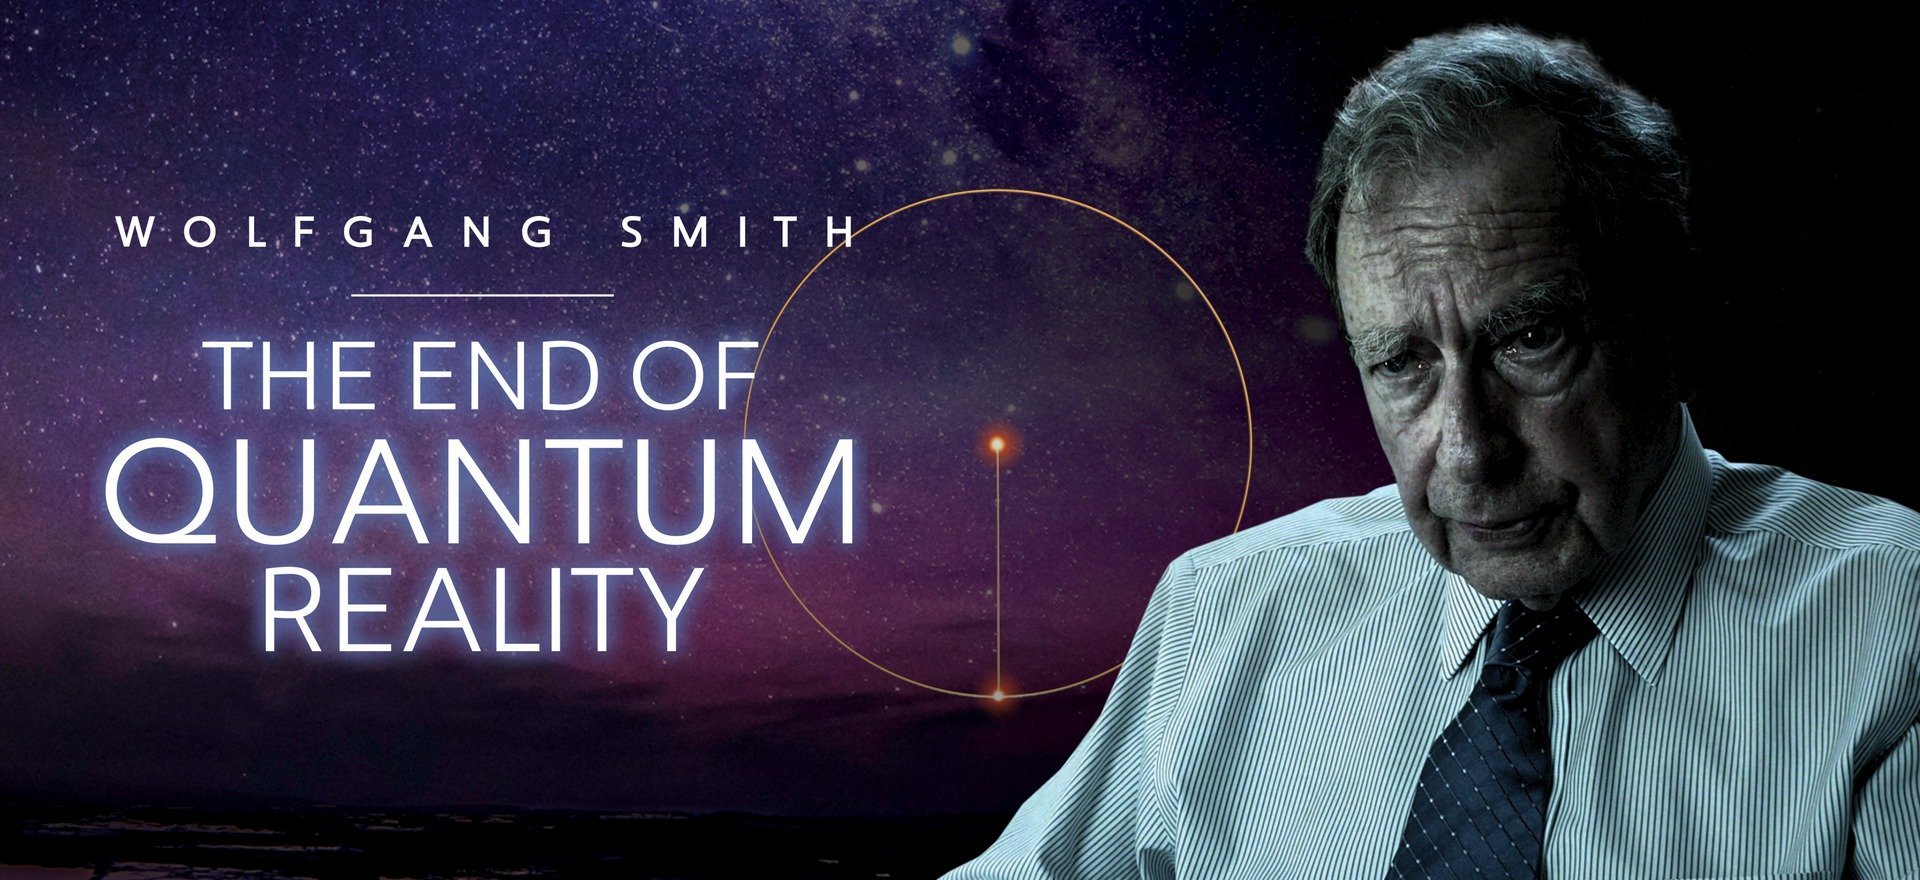 Wolfgang Smith - The End of Quantum Reality